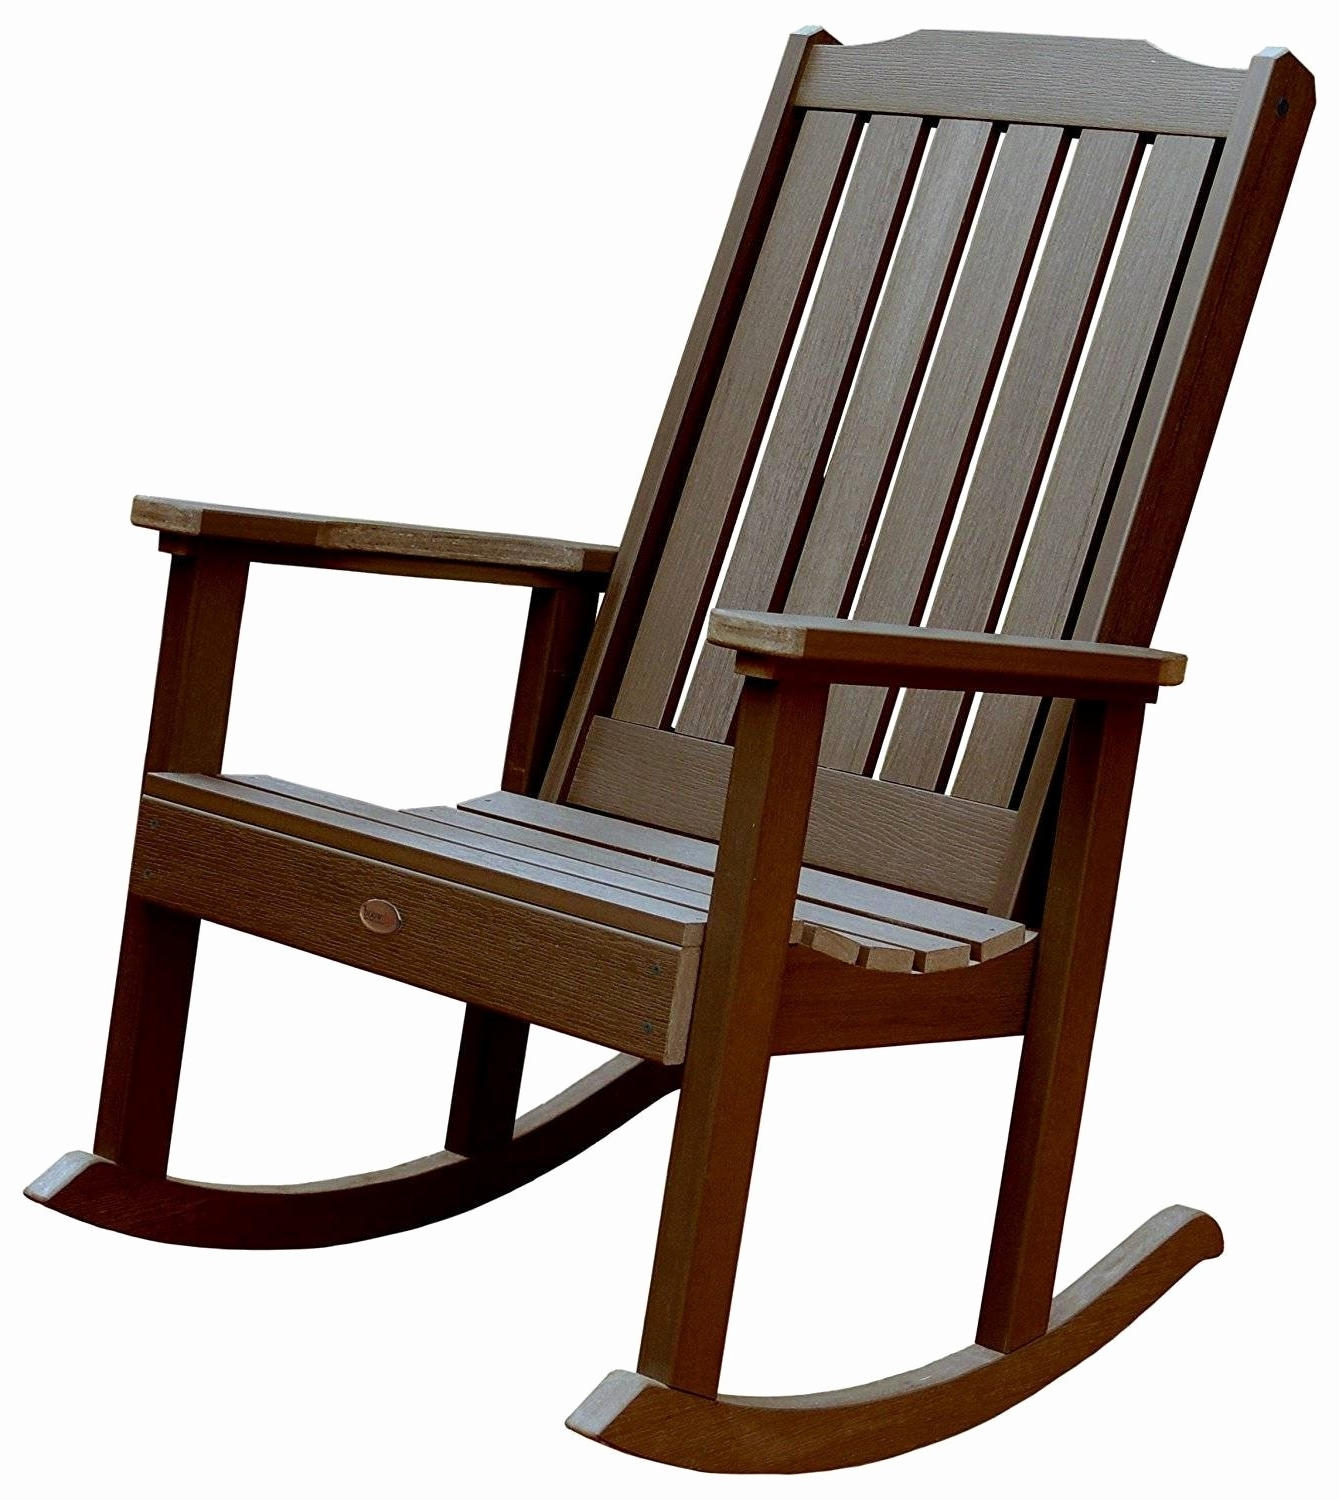 Trendy Outdoor Patio Rocking Chairs Awesome Ideas For Chair And Ottoman Set Regarding Patio Rocking Chairs With Ottoman (View 14 of 15)